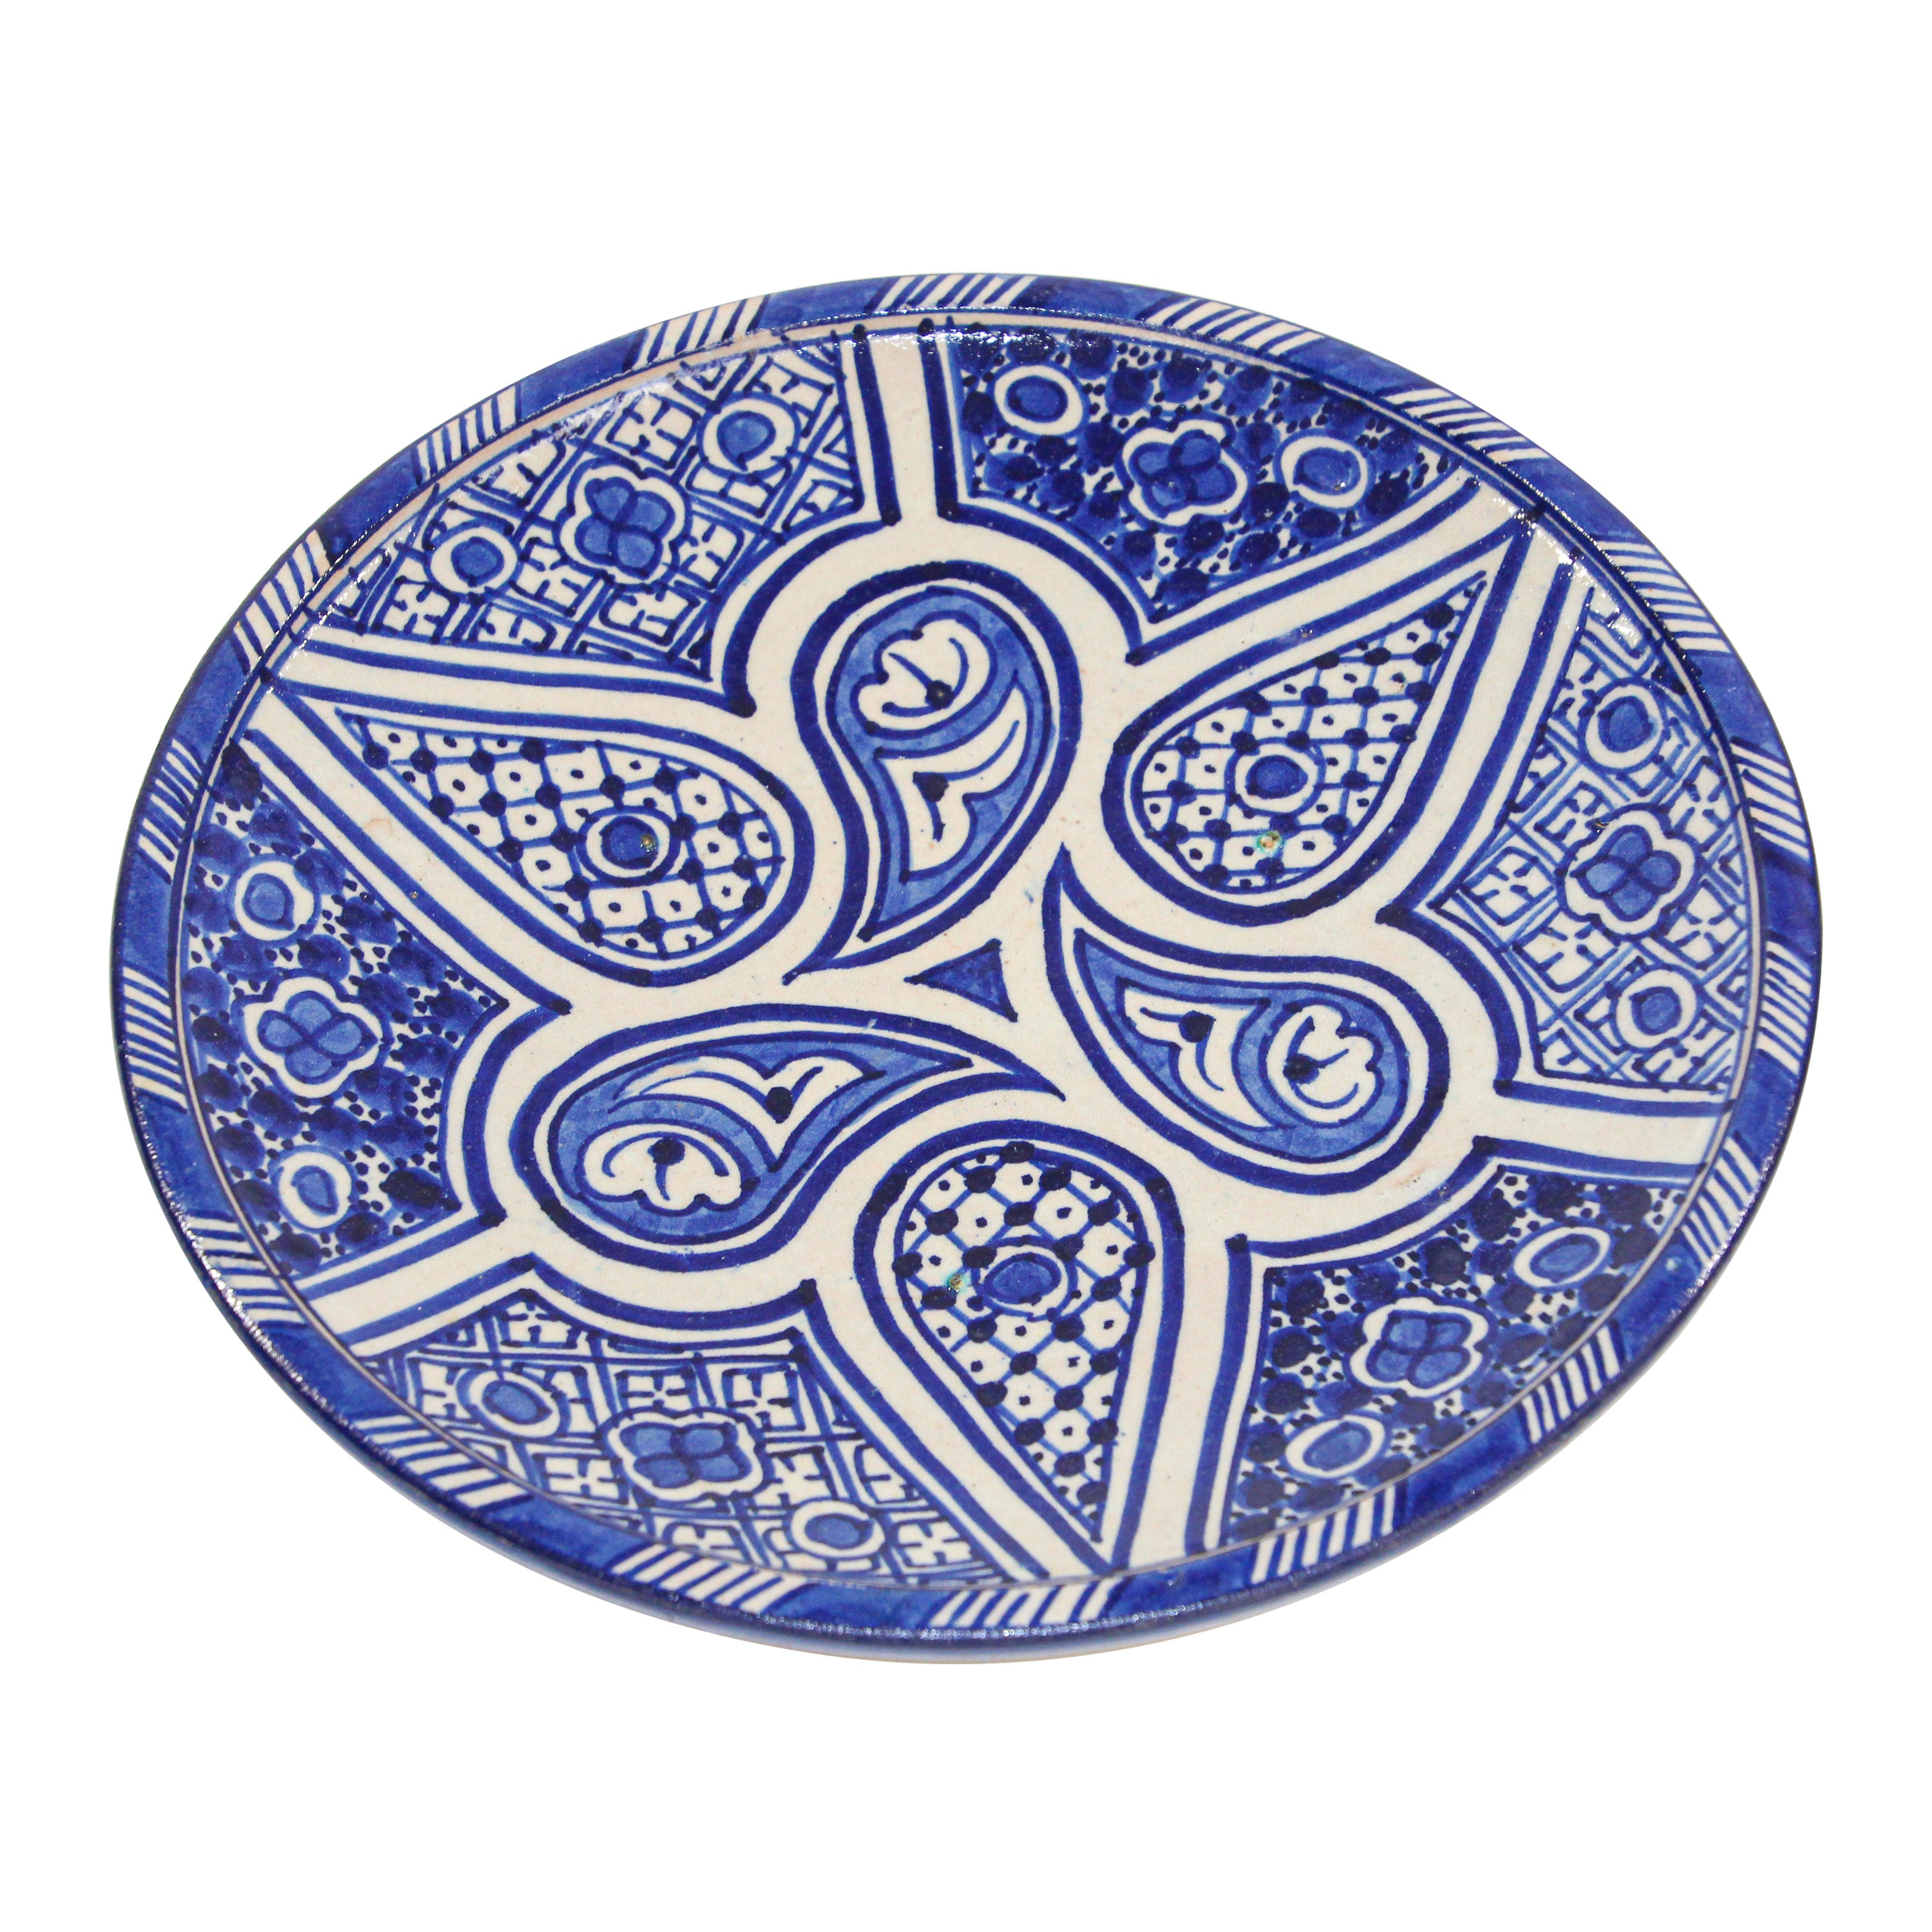 Moroccan Ceramic Plate Blue and White Handcrafted in Fez